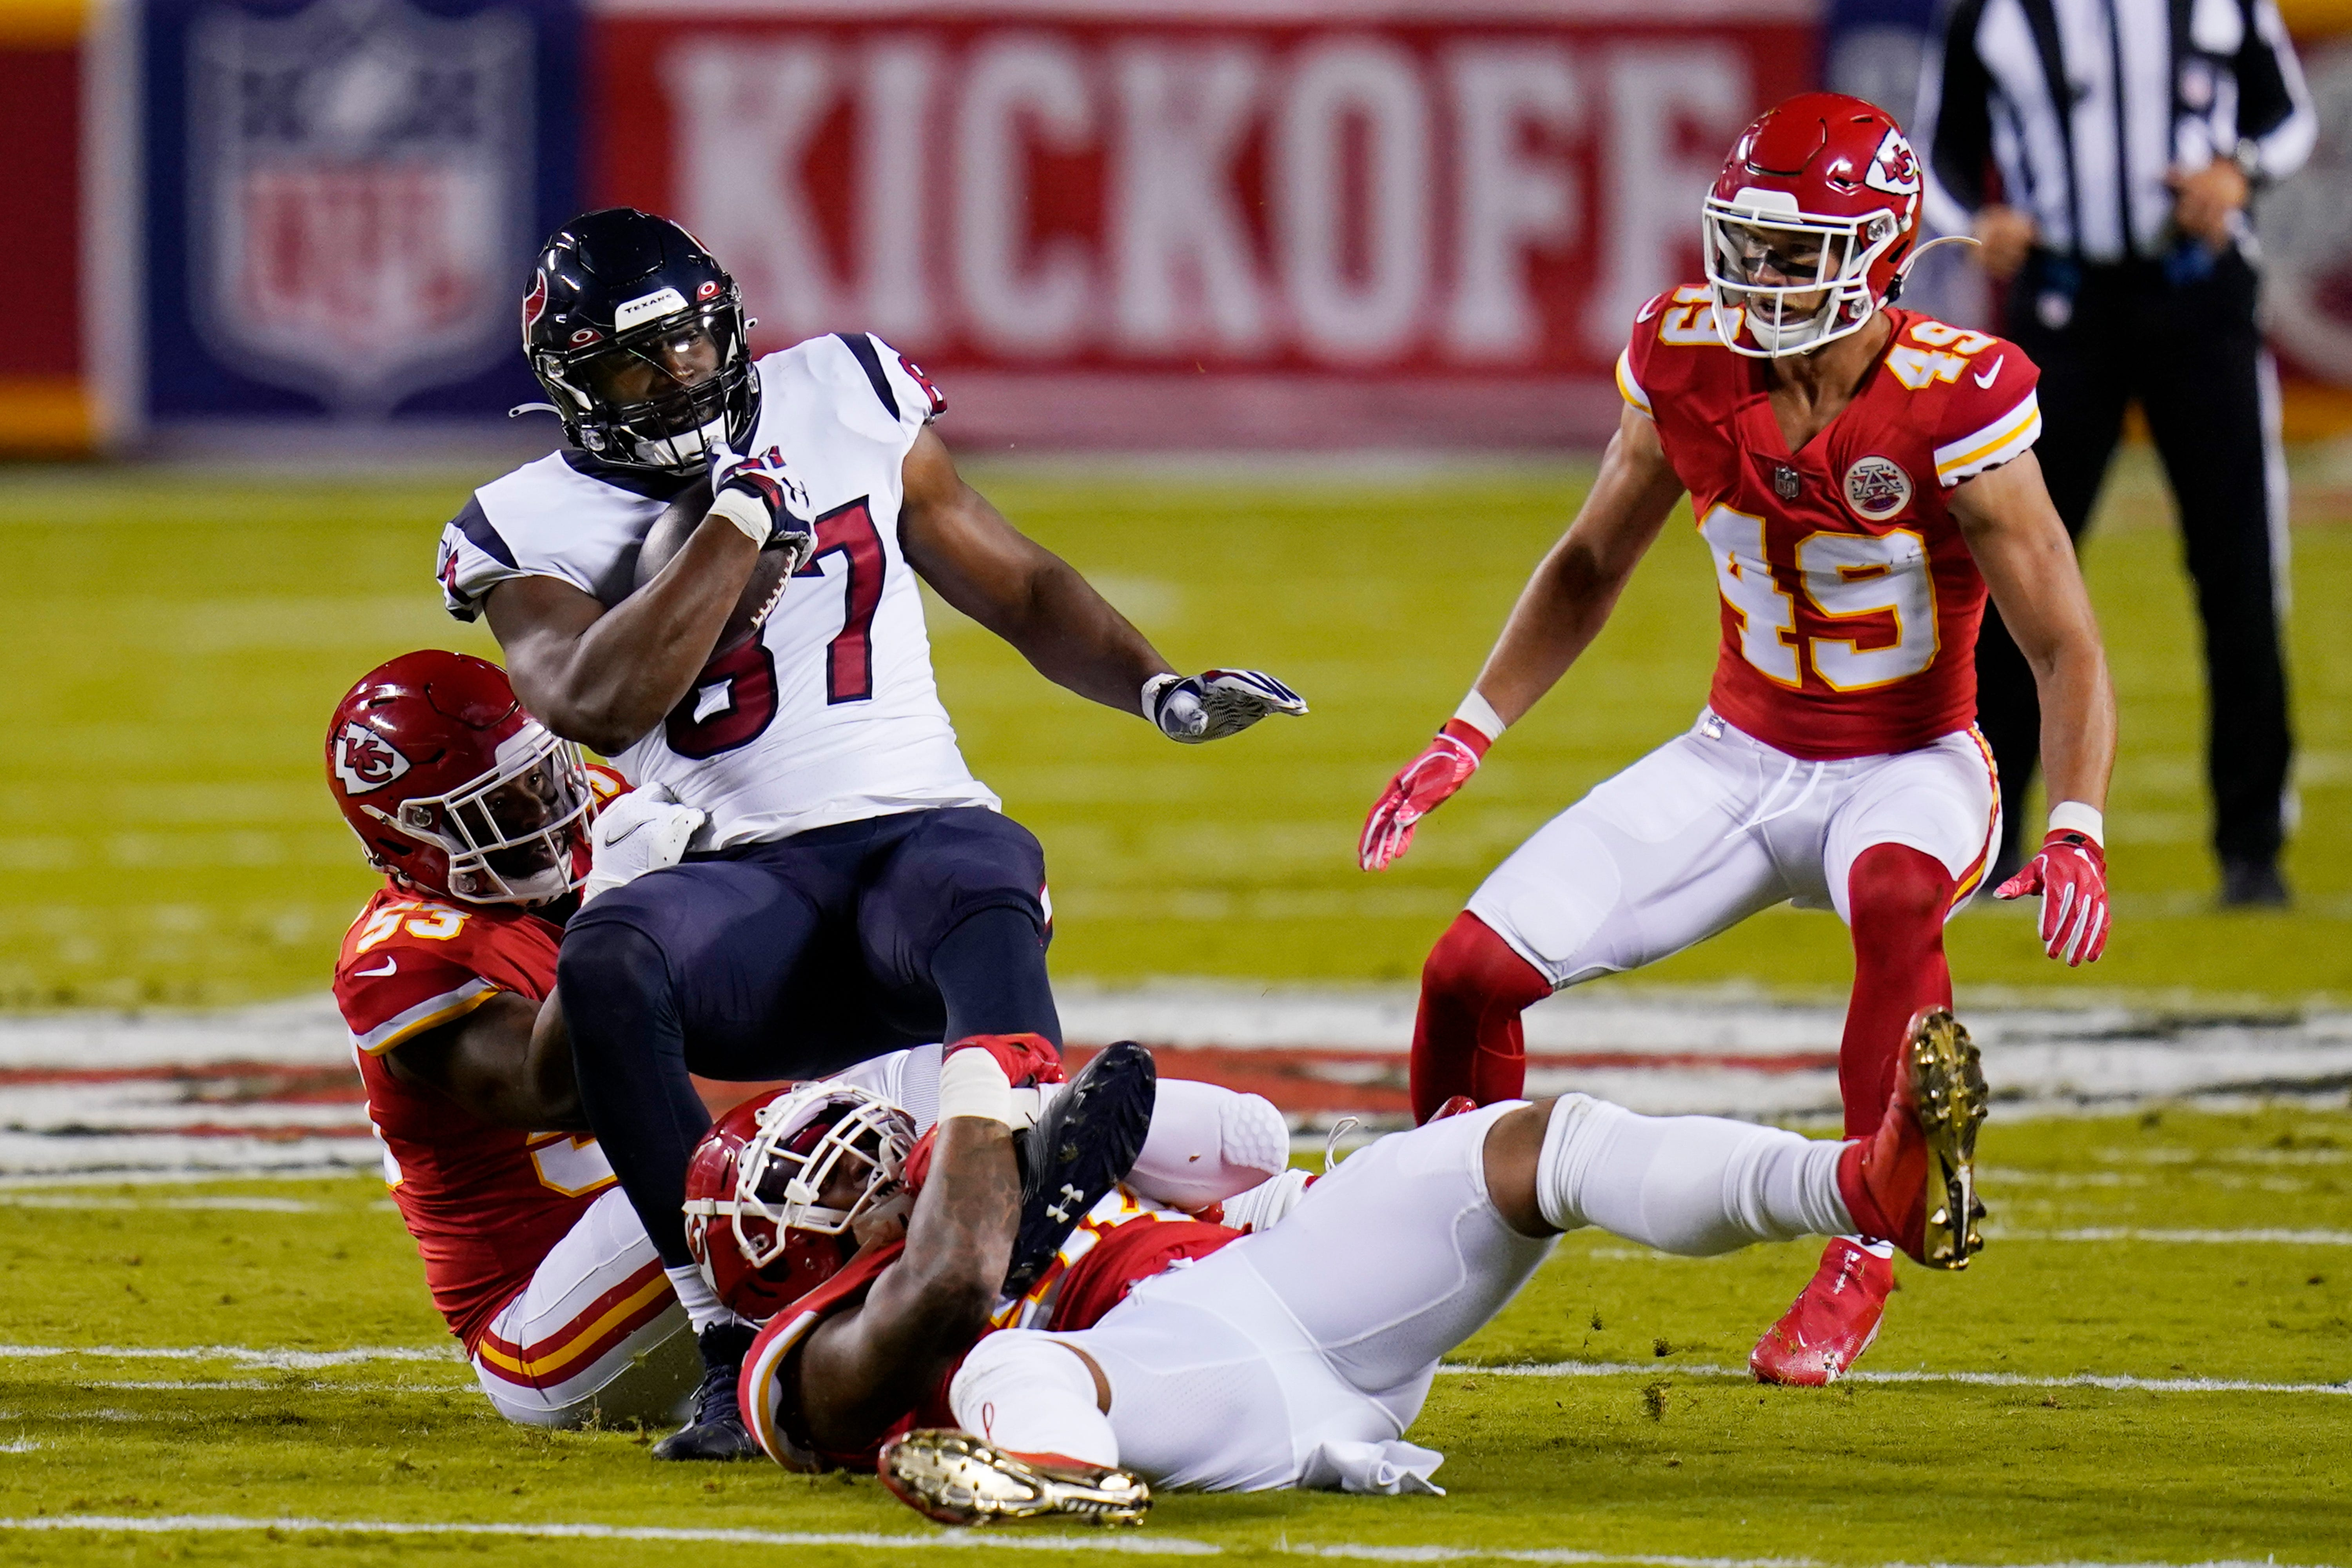 Houston Texans vs. Kansas City Chiefs live blog: Score updates, highlights from NFL kickoff game